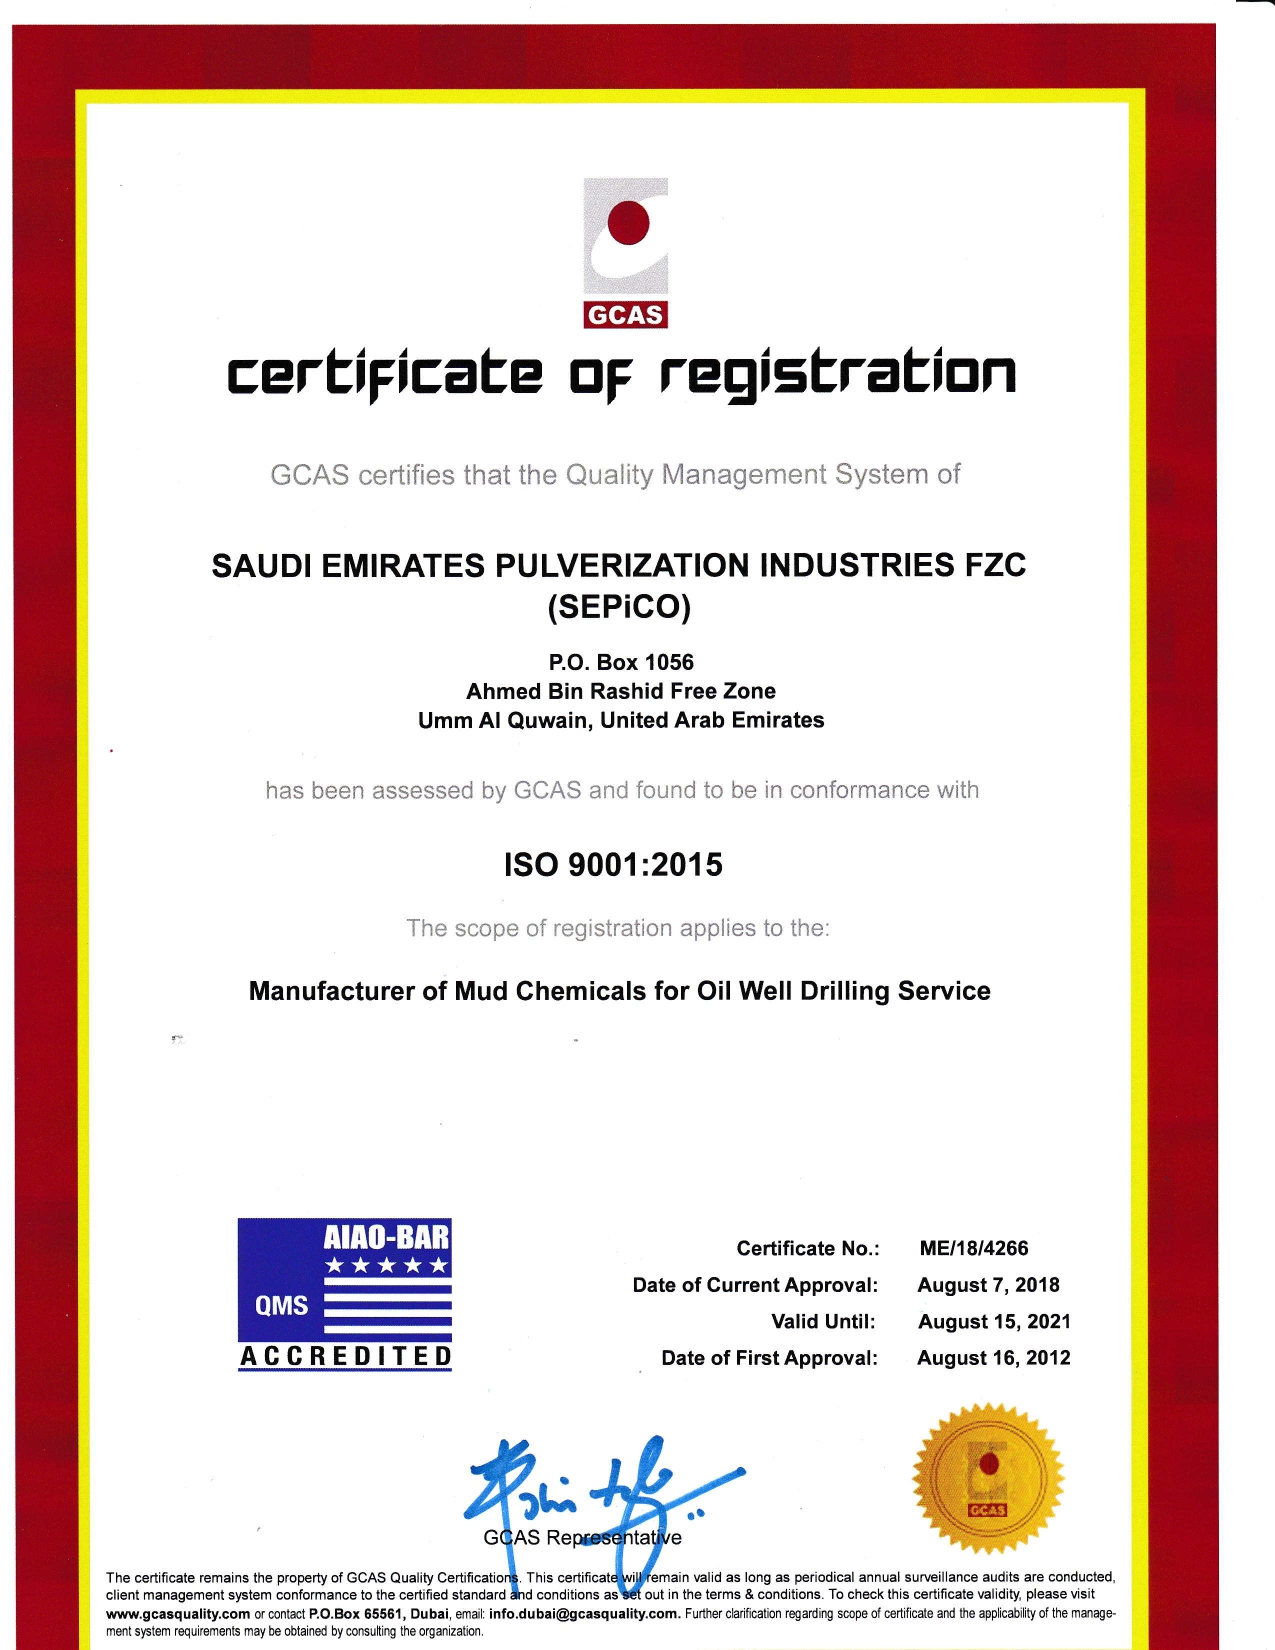 ISO Certificate of Quality